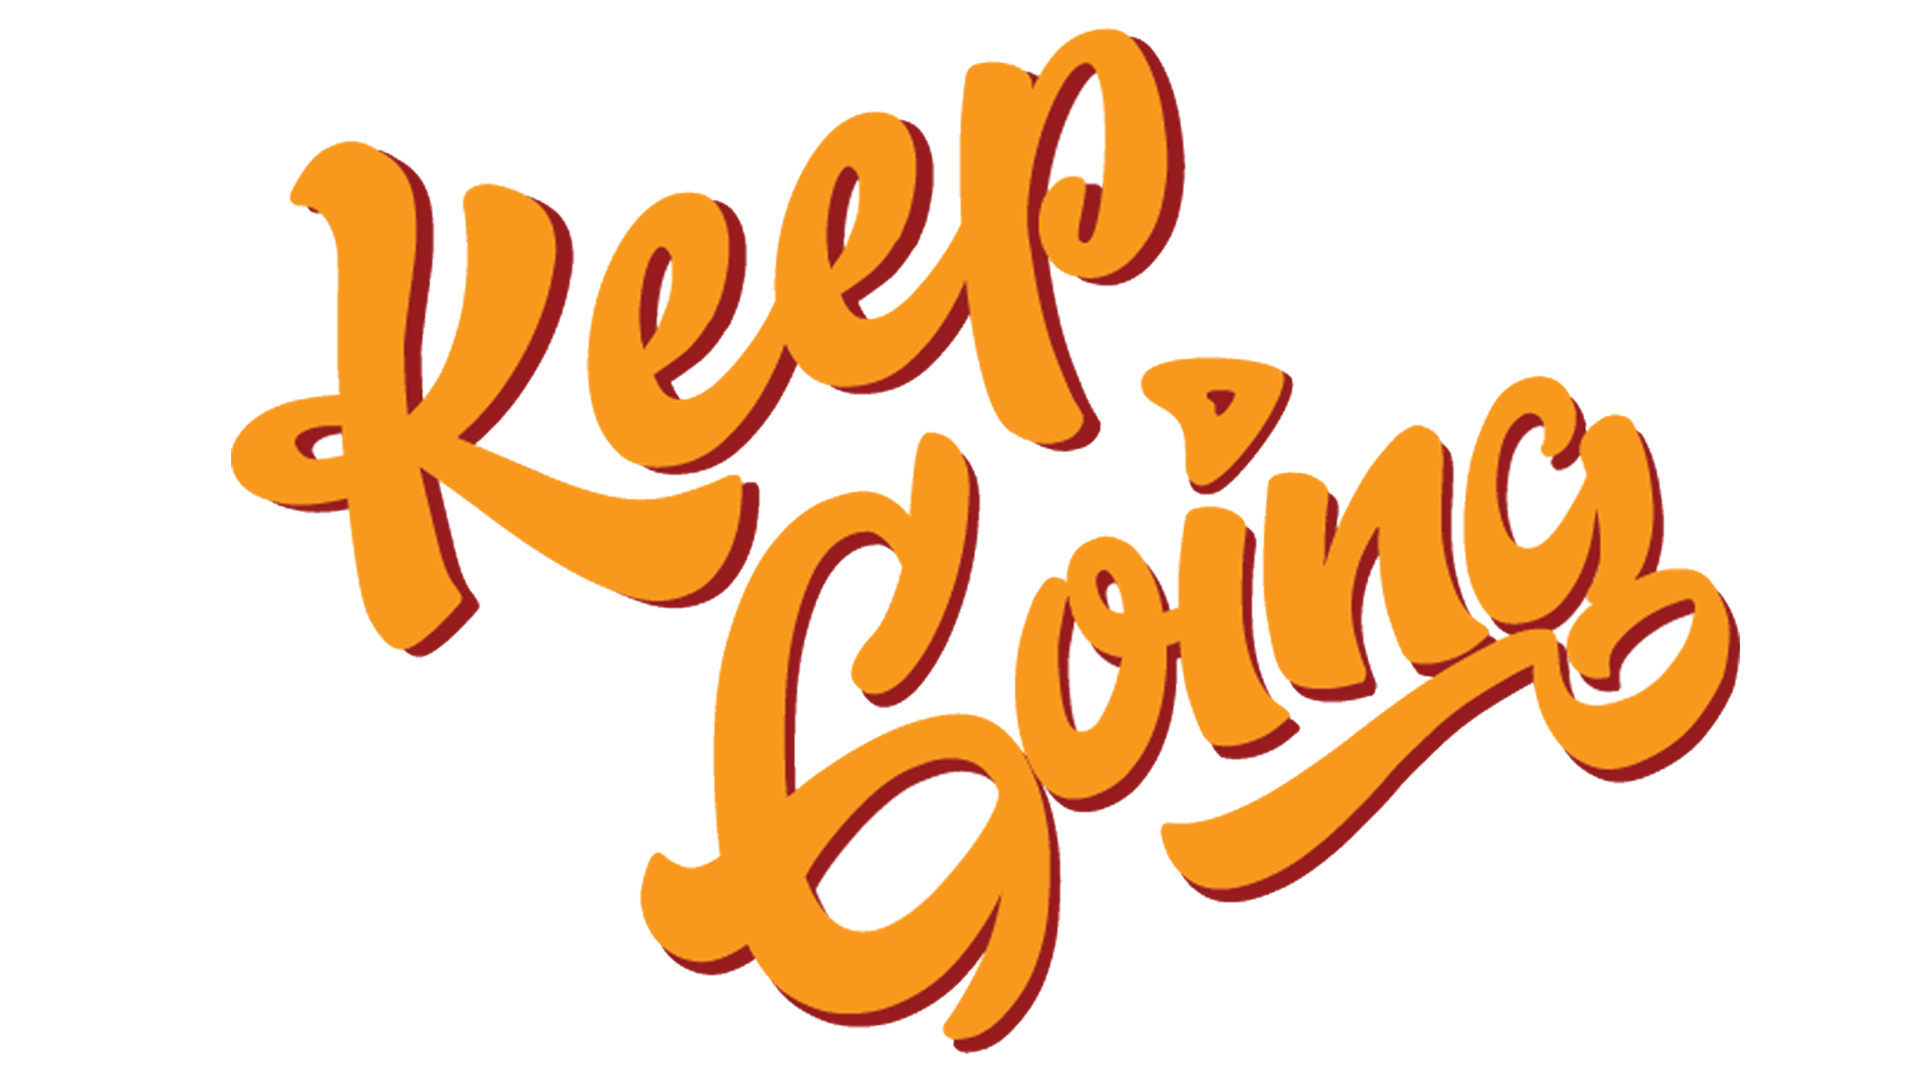 Keep Going logo